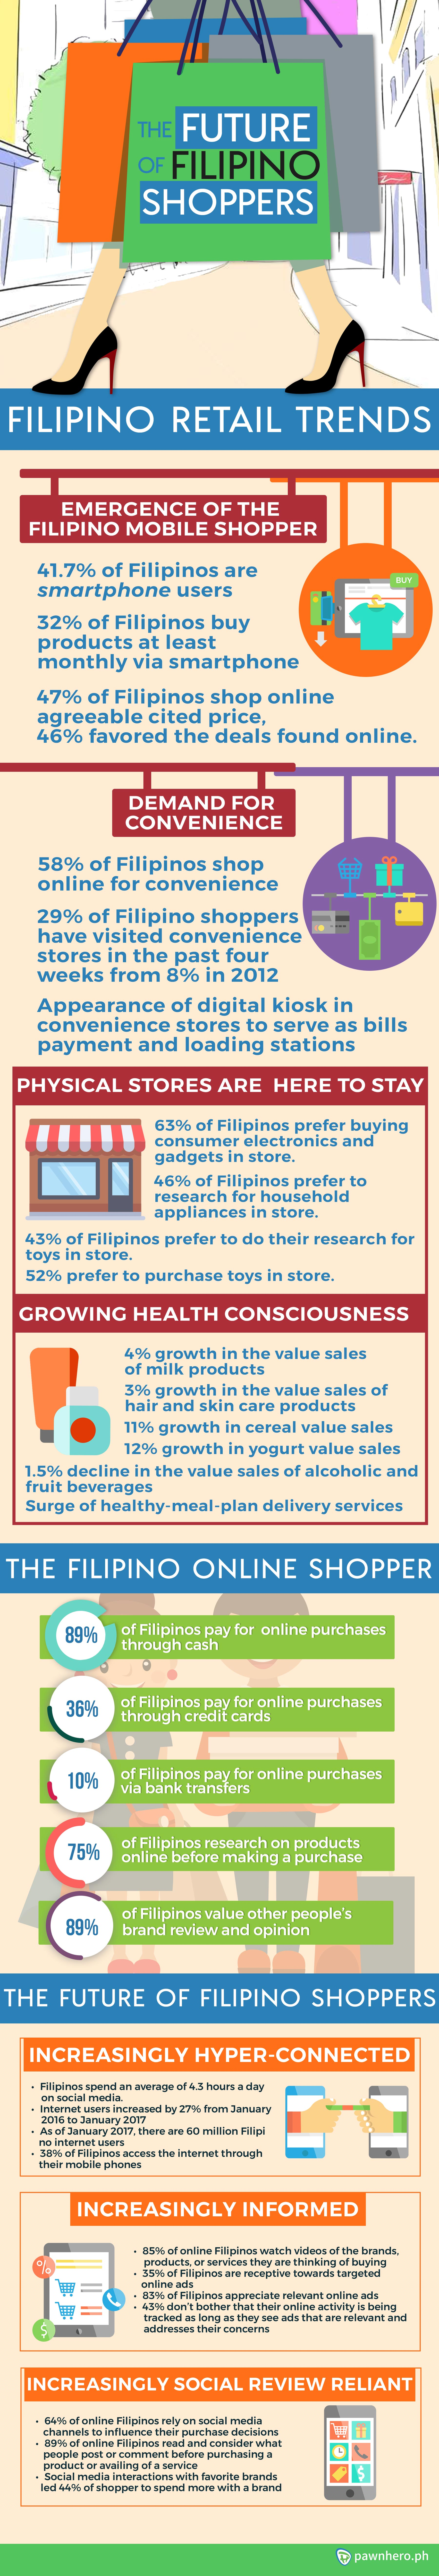 BLOG_INFOGRAPHIC_FUTURE-FILIPINO-SHOPPERS